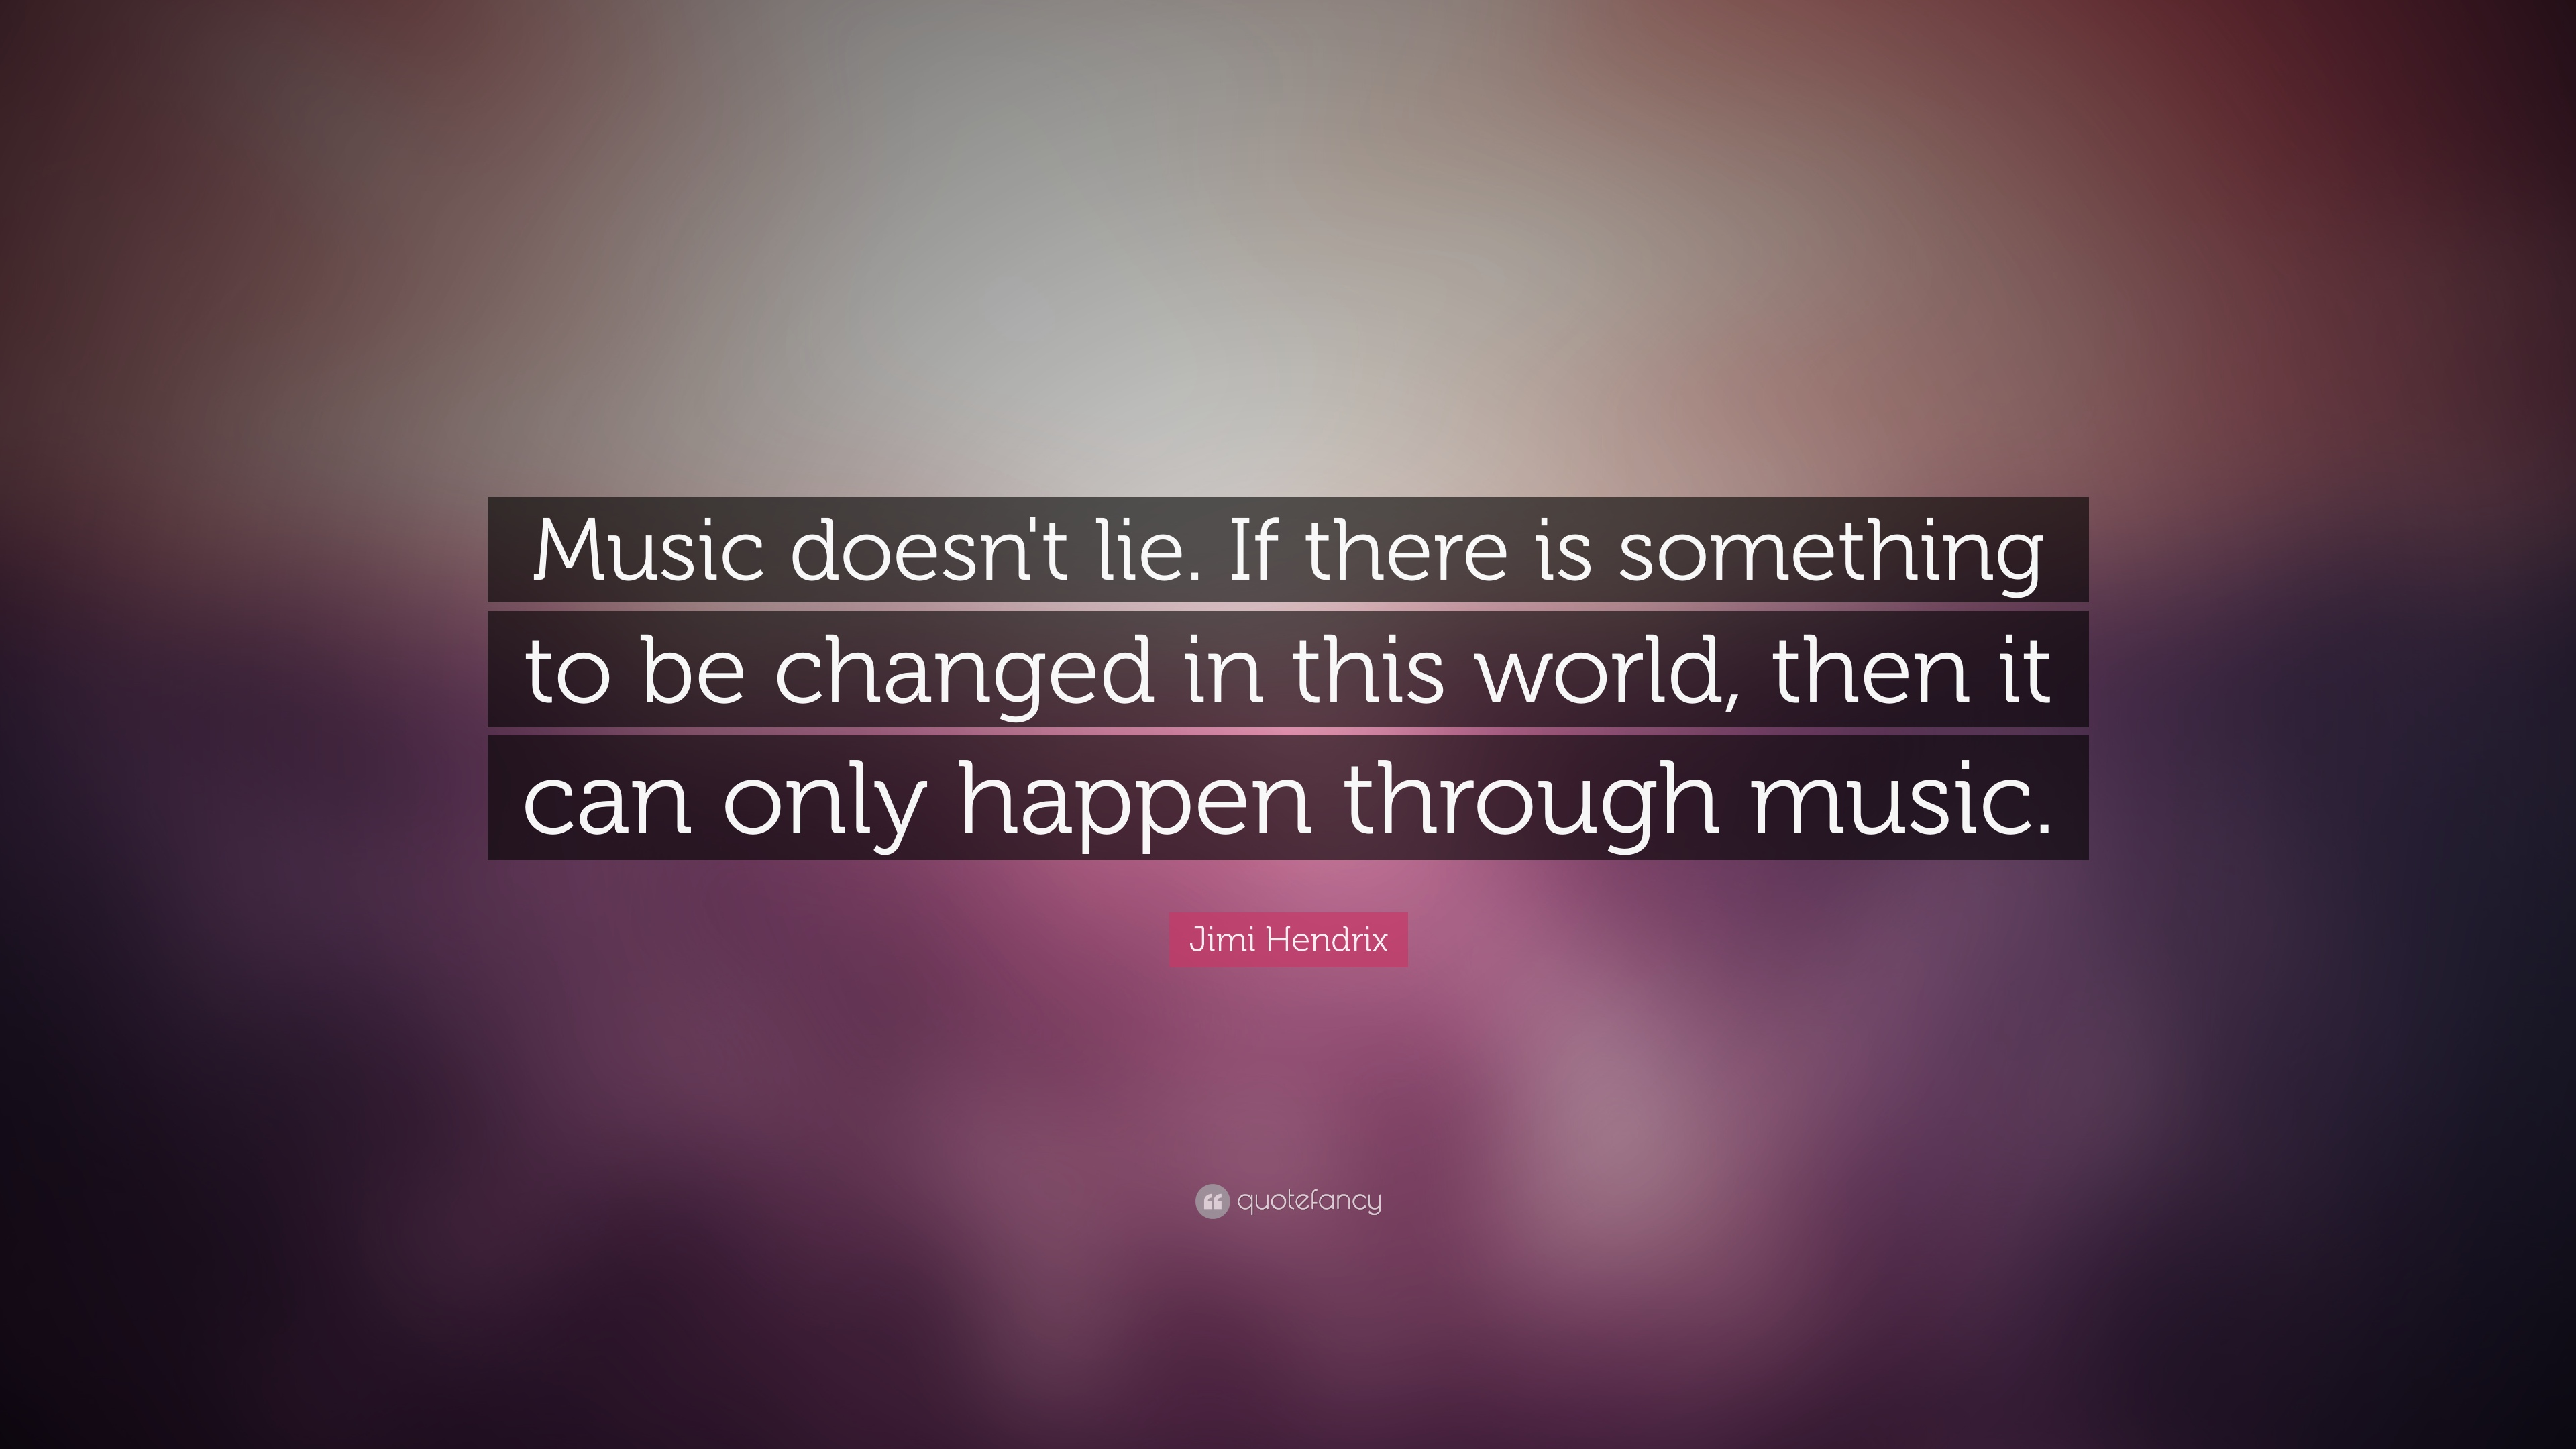 Music Quotes (40 wallpapers) - Quotefancy